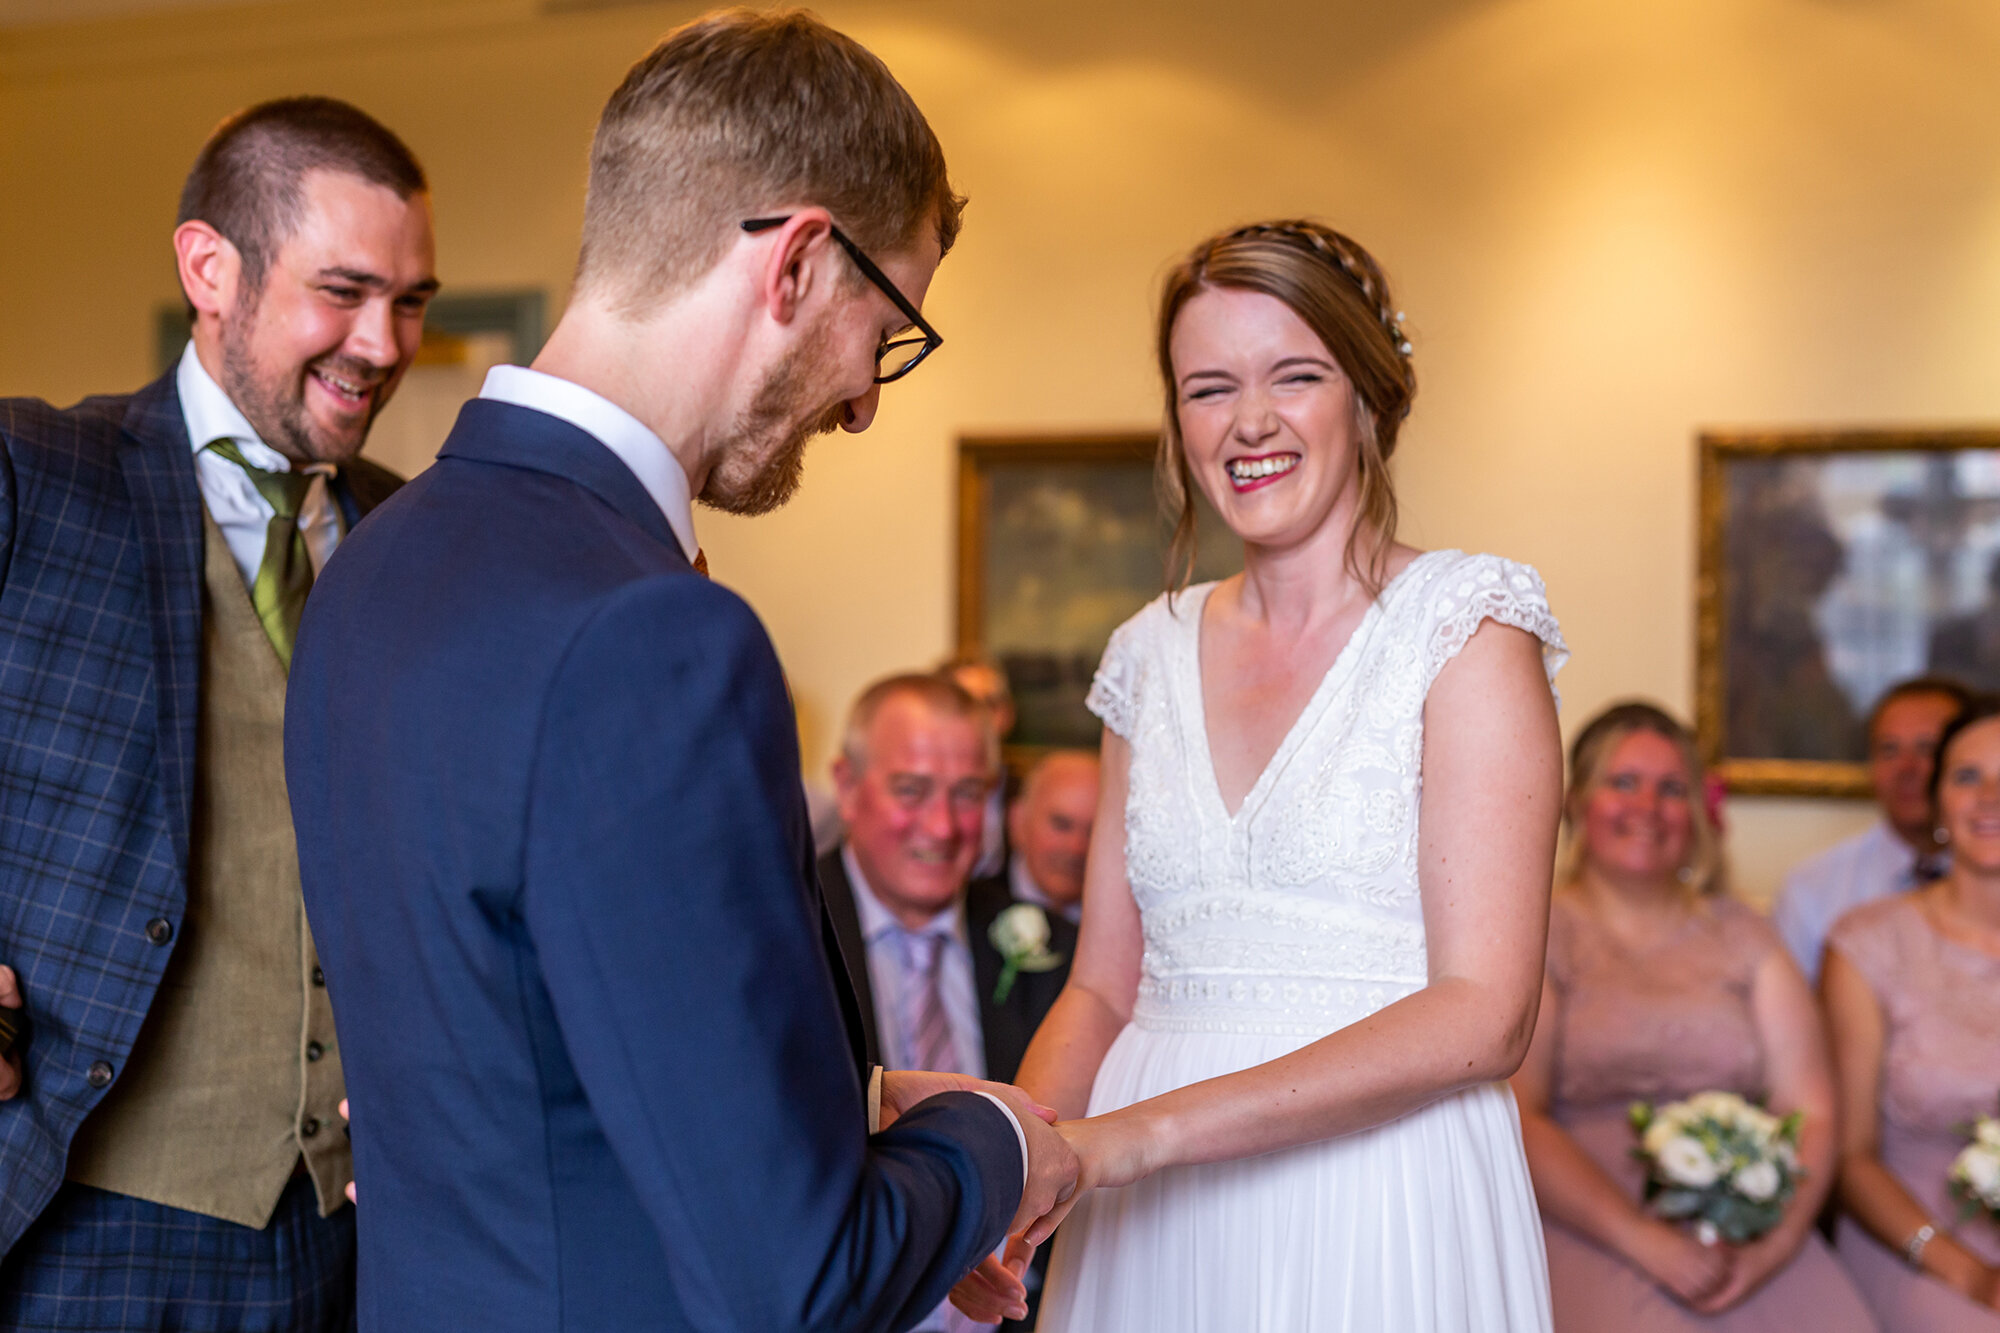 R&T Assembly House Norwich Wedding Photography (14).JPG